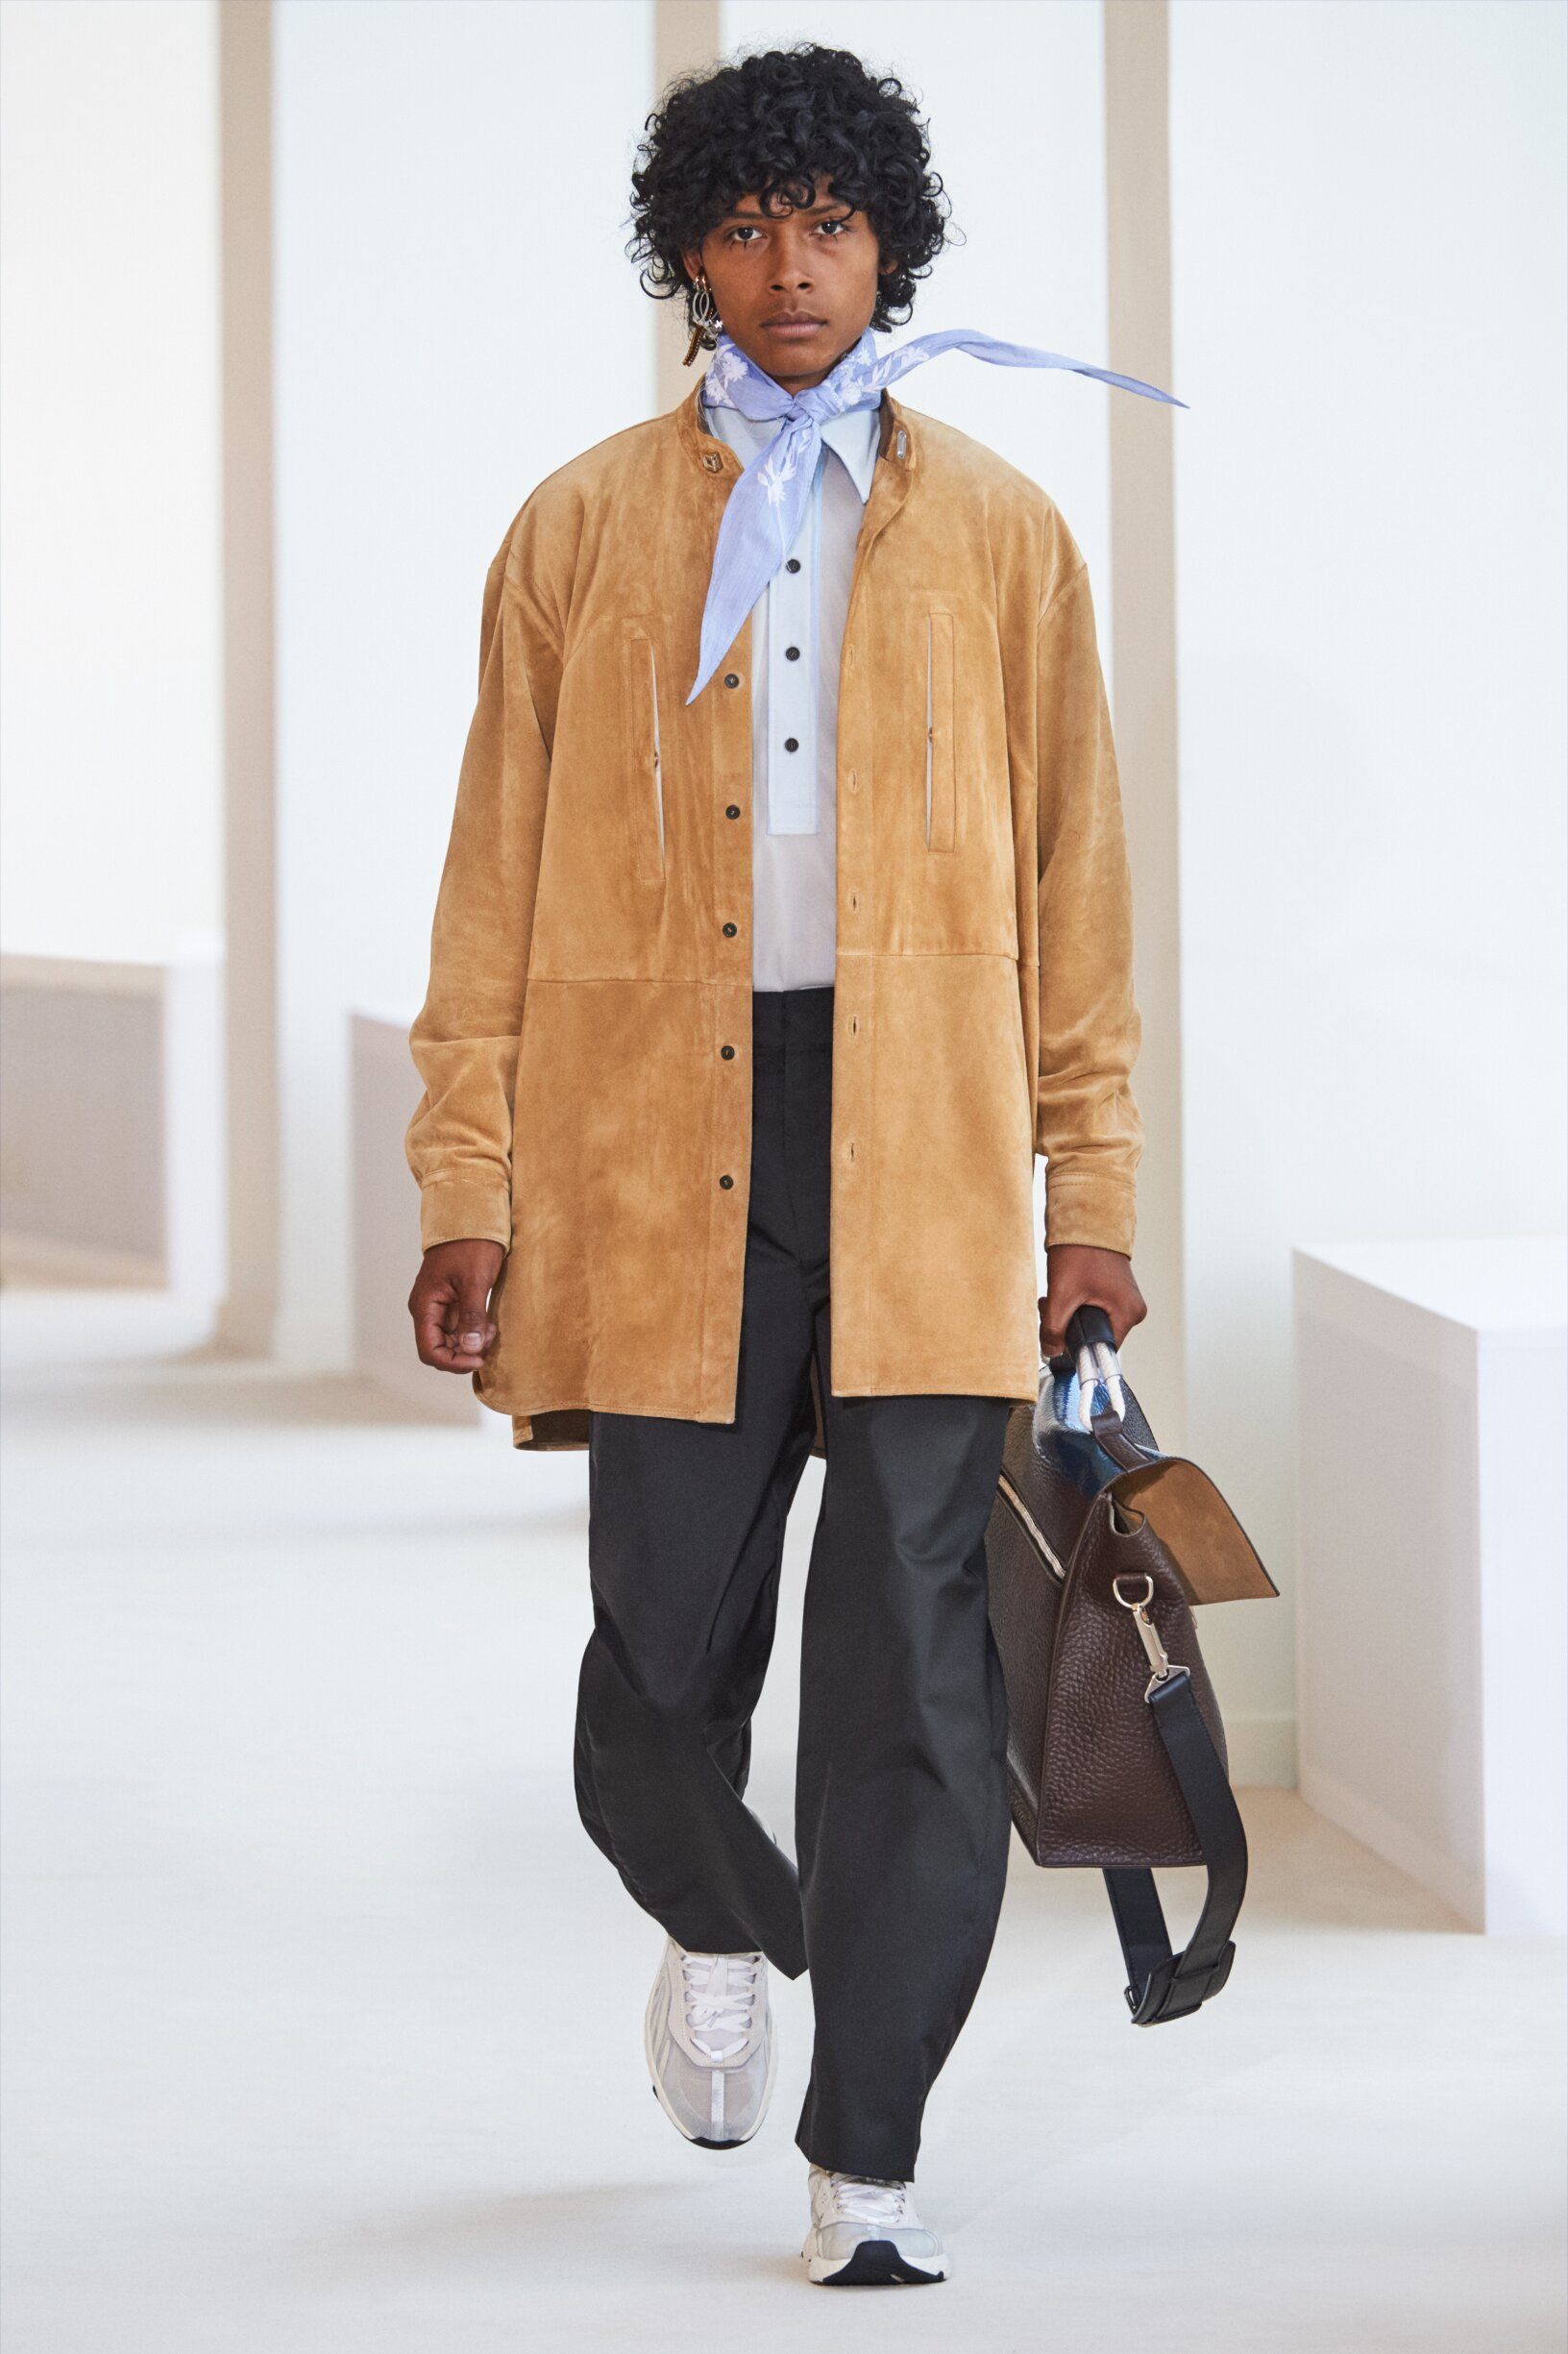 Fashion Model Man Acne Studios Catwalk